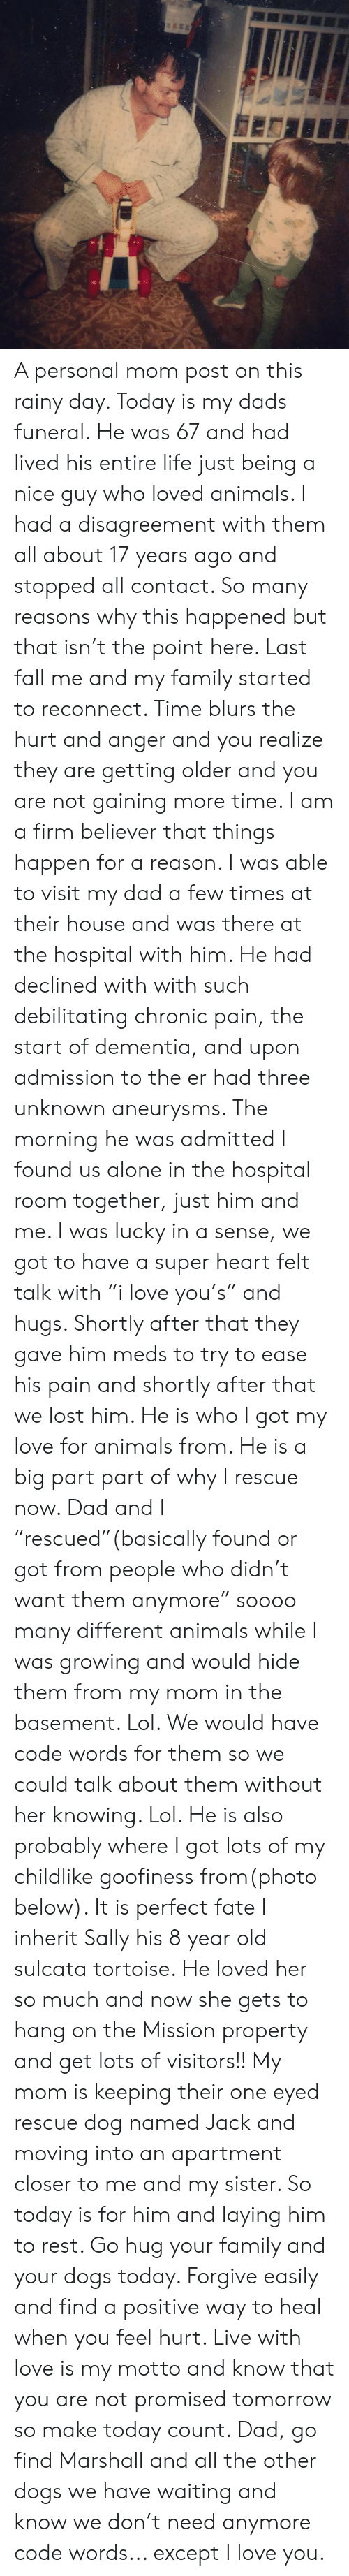 """Being Alone, Animals, and Dad: A personal mom post on this rainy day. Today is my dads funeral. He was 67 and had lived his entire life just being a nice guy who loved animals. I had a disagreement with them all about 17 years ago and stopped all contact. So many reasons why this happened but that isn't the point here. Last fall me and my family started to reconnect. Time blurs the hurt and anger and you realize they are getting older and you are not gaining more time.   I am a firm believer that things happen for a reason. I was able to visit my dad a few times at their house and was there at the hospital with him. He had declined with with such debilitating chronic pain, the start of dementia, and upon admission to the er had three unknown aneurysms. The morning he was admitted I found us alone in the hospital room together, just him and me. I was lucky in a sense, we got to have a super heart felt talk with """"i love you's"""" and hugs. Shortly after that they gave him meds to try to ease his pain and shortly after that we lost him.   He is who I got my love for animals from. He is a big part part of why I rescue now. Dad and I """"rescued""""(basically found or got from people who didn't want them anymore"""" soooo many different animals while I was growing and would hide them from my mom in the basement. Lol. We would have code words for them so we could talk about them without her knowing. Lol. He is also probably where I got lots of my childlike goofiness from(photo below). It is perfect fate I inherit Sally his 8 year old sulcata tortoise. He loved her so much and now she gets to hang on the Mission property and get lots of visitors!! My mom is keeping their one eyed rescue dog named Jack and moving into an apartment closer to me and my sister. So today is for him and laying him to rest. Go hug your family and your dogs today. Forgive easily and find a positive way to heal when you feel hurt. Live with love is my motto and know that you are not promised tomorrow so make t"""